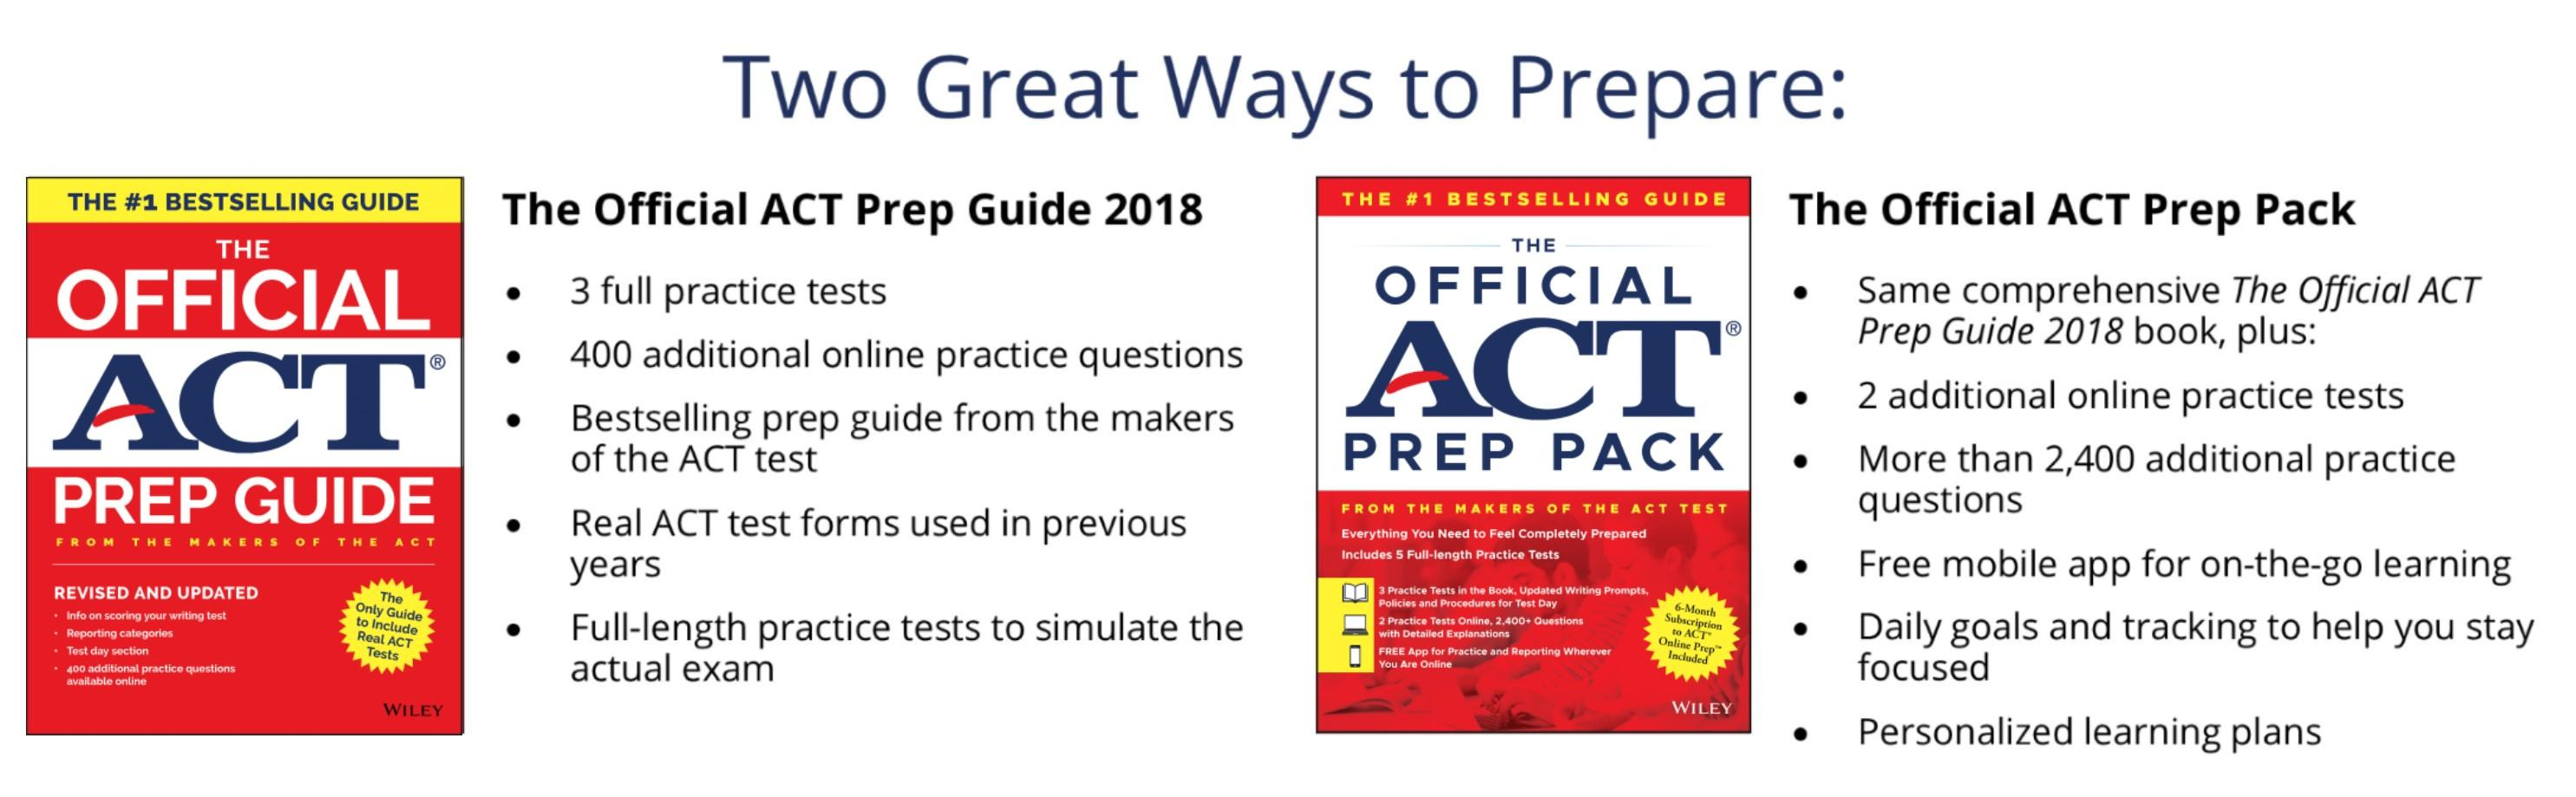 ACT Official Prep Guide 2018